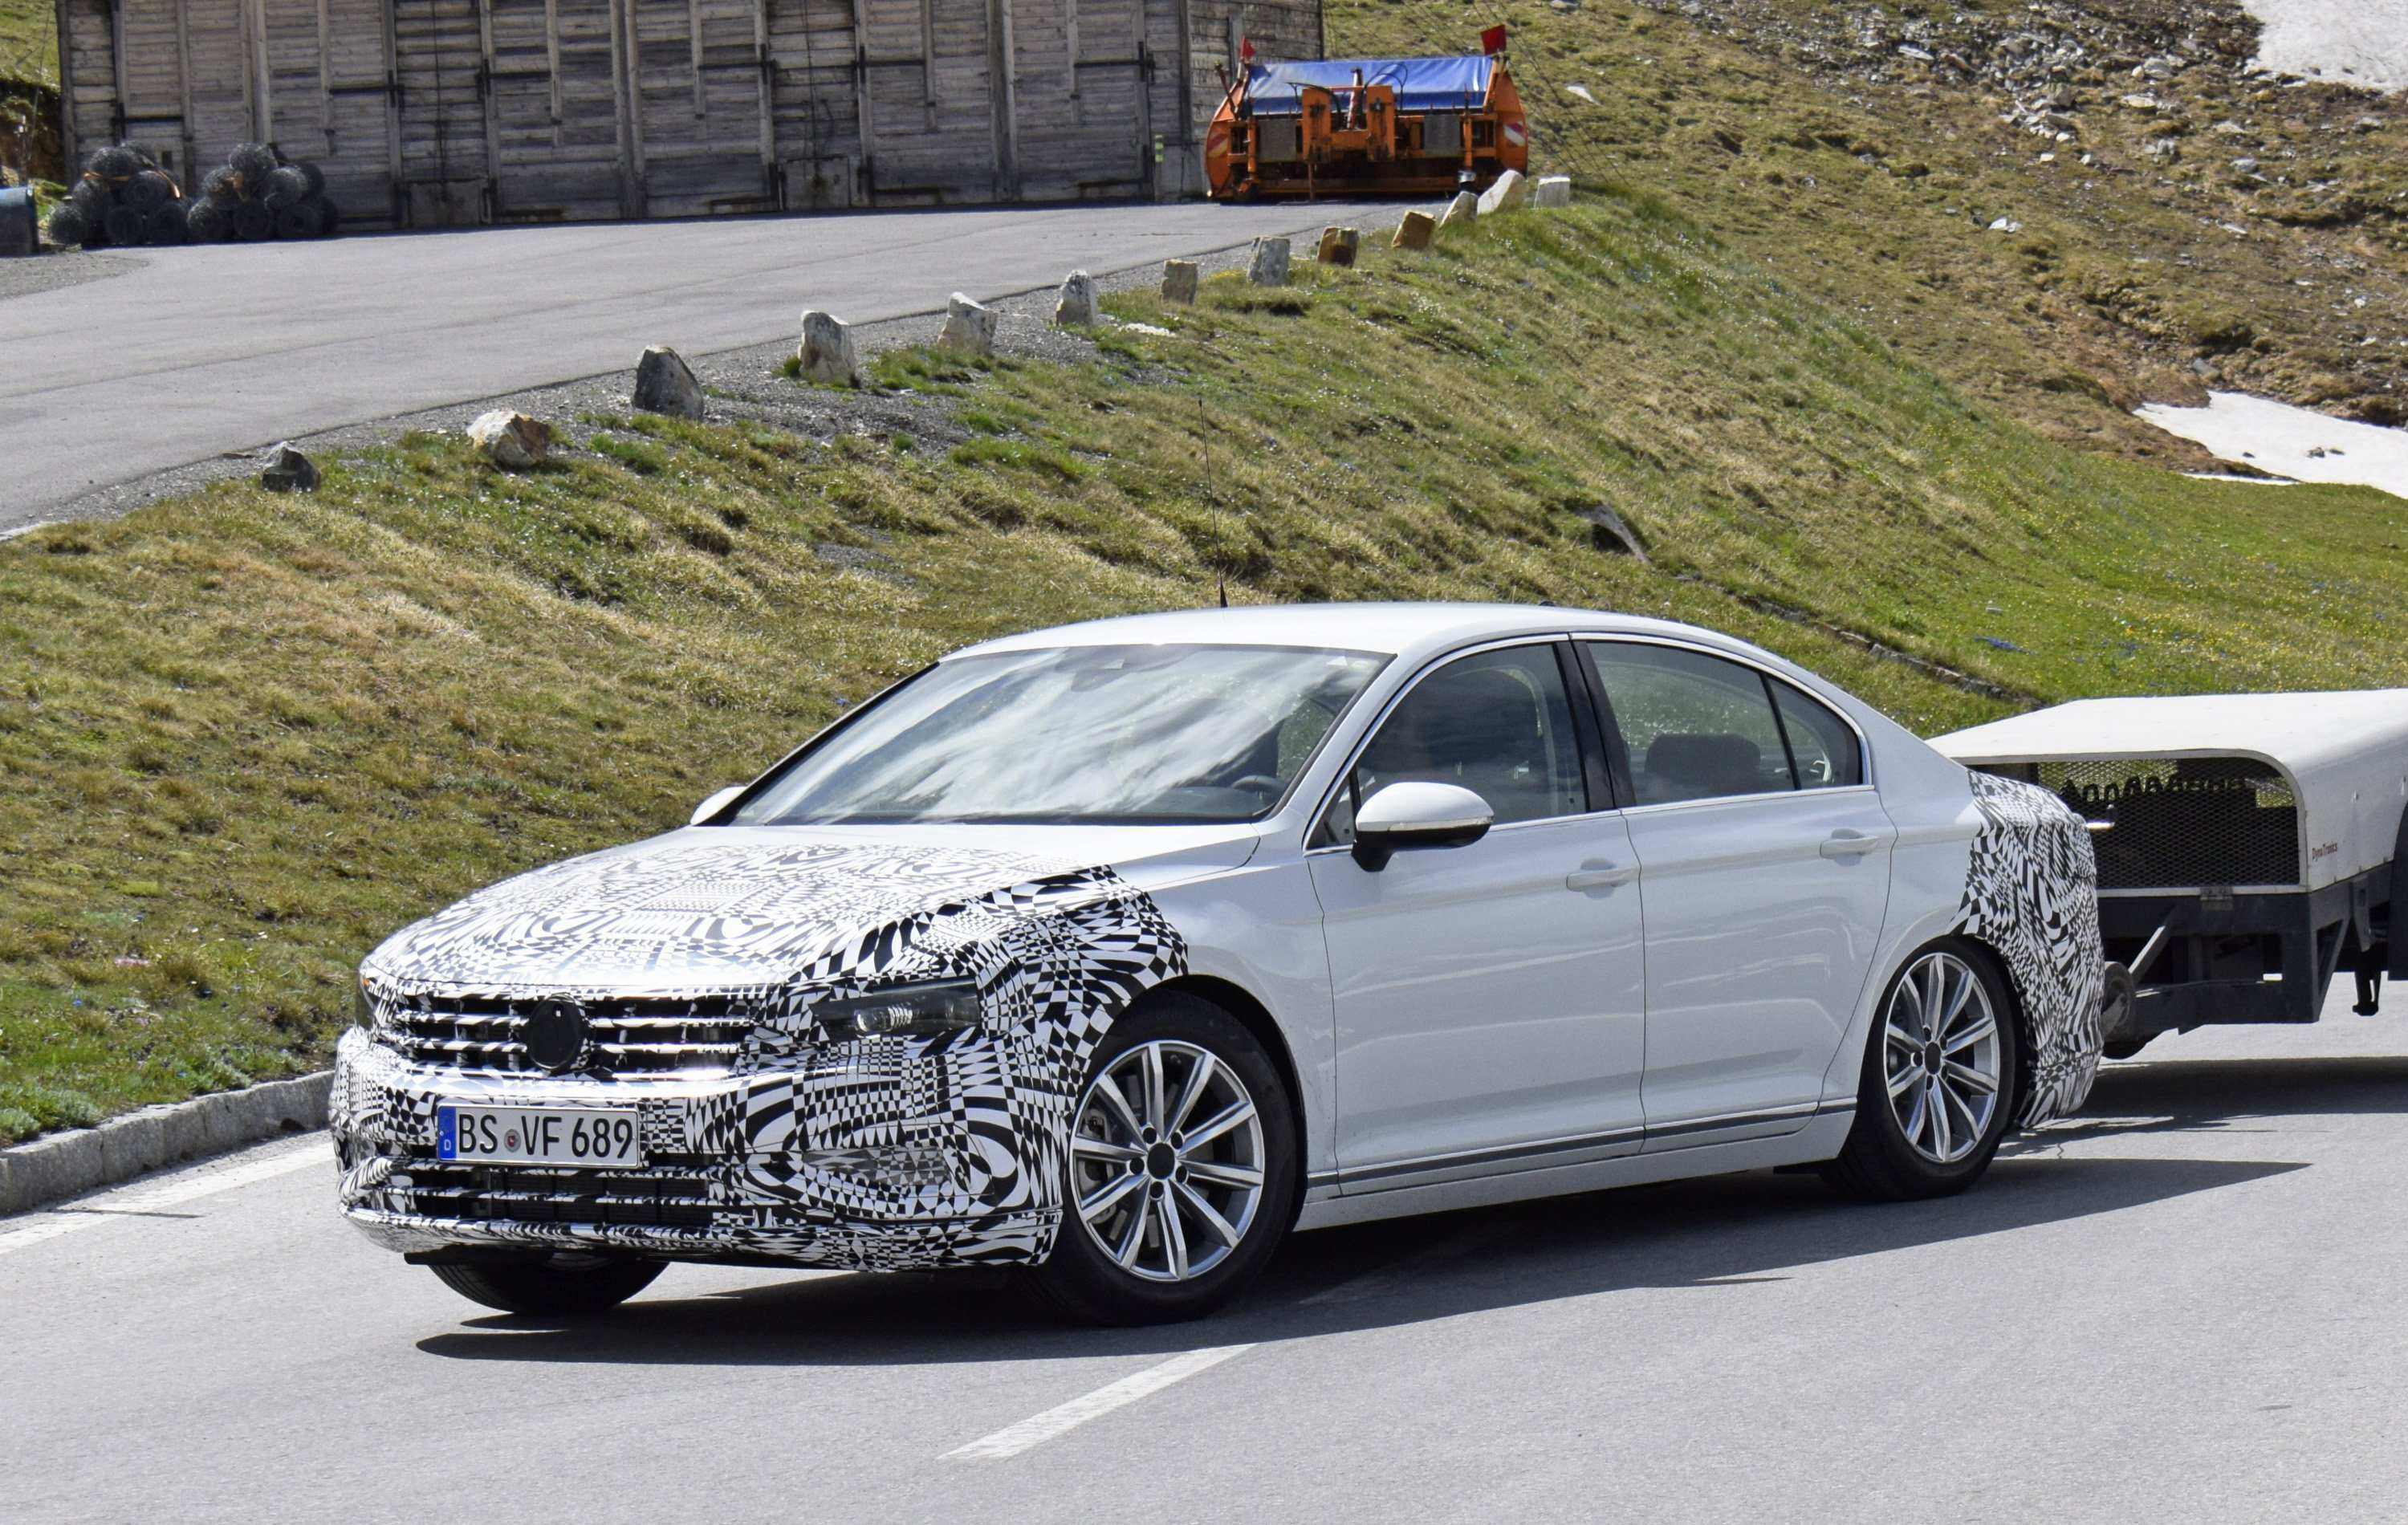 51 The Best 2019 Volkswagen CC Research New